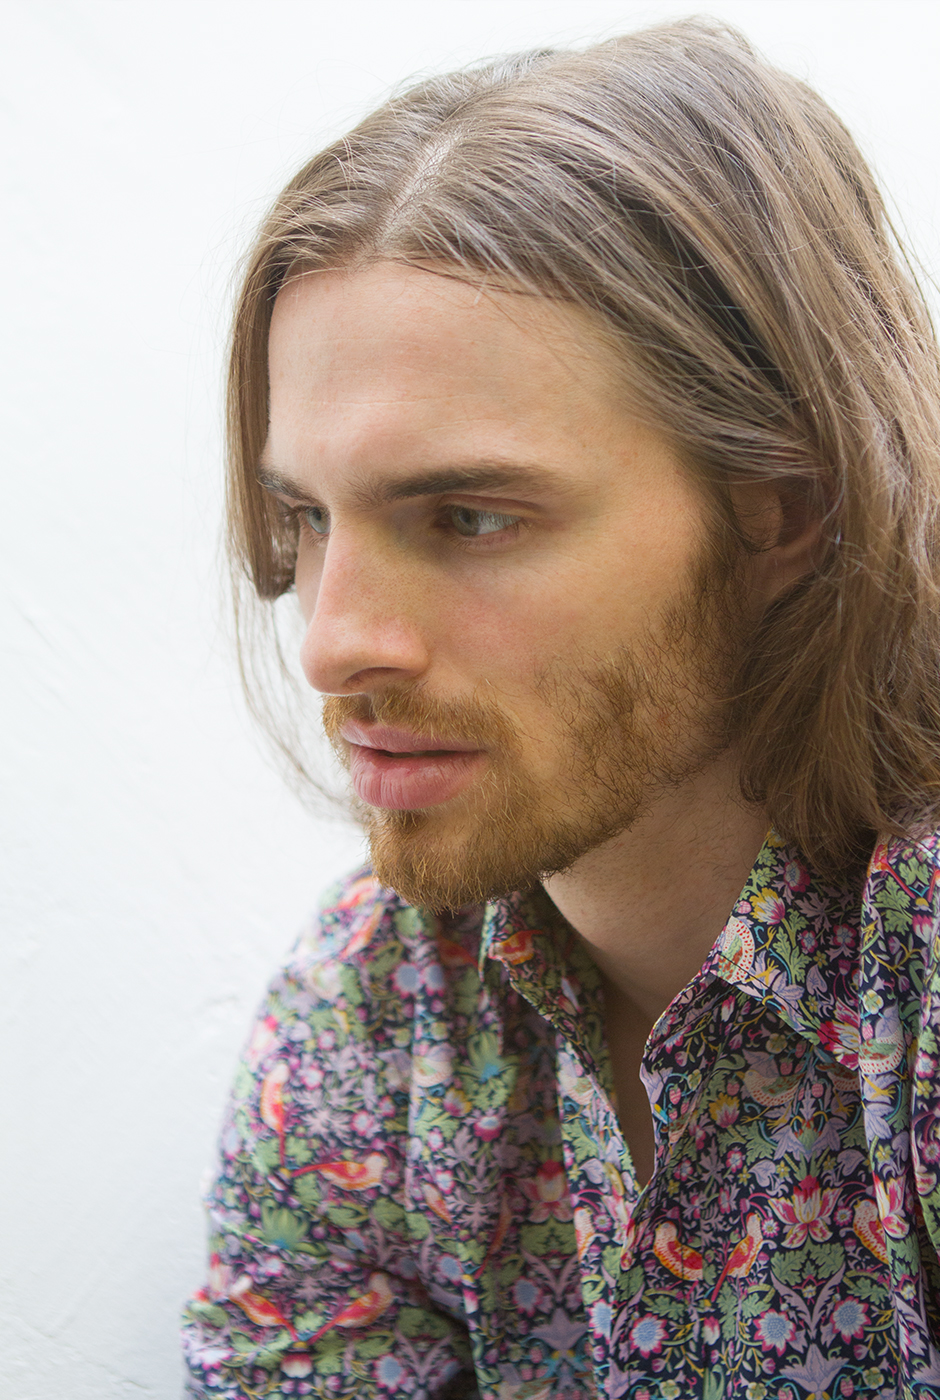 LIBERTY OF LONDON SHIRT In STRAWBERRY THIEF PRINT